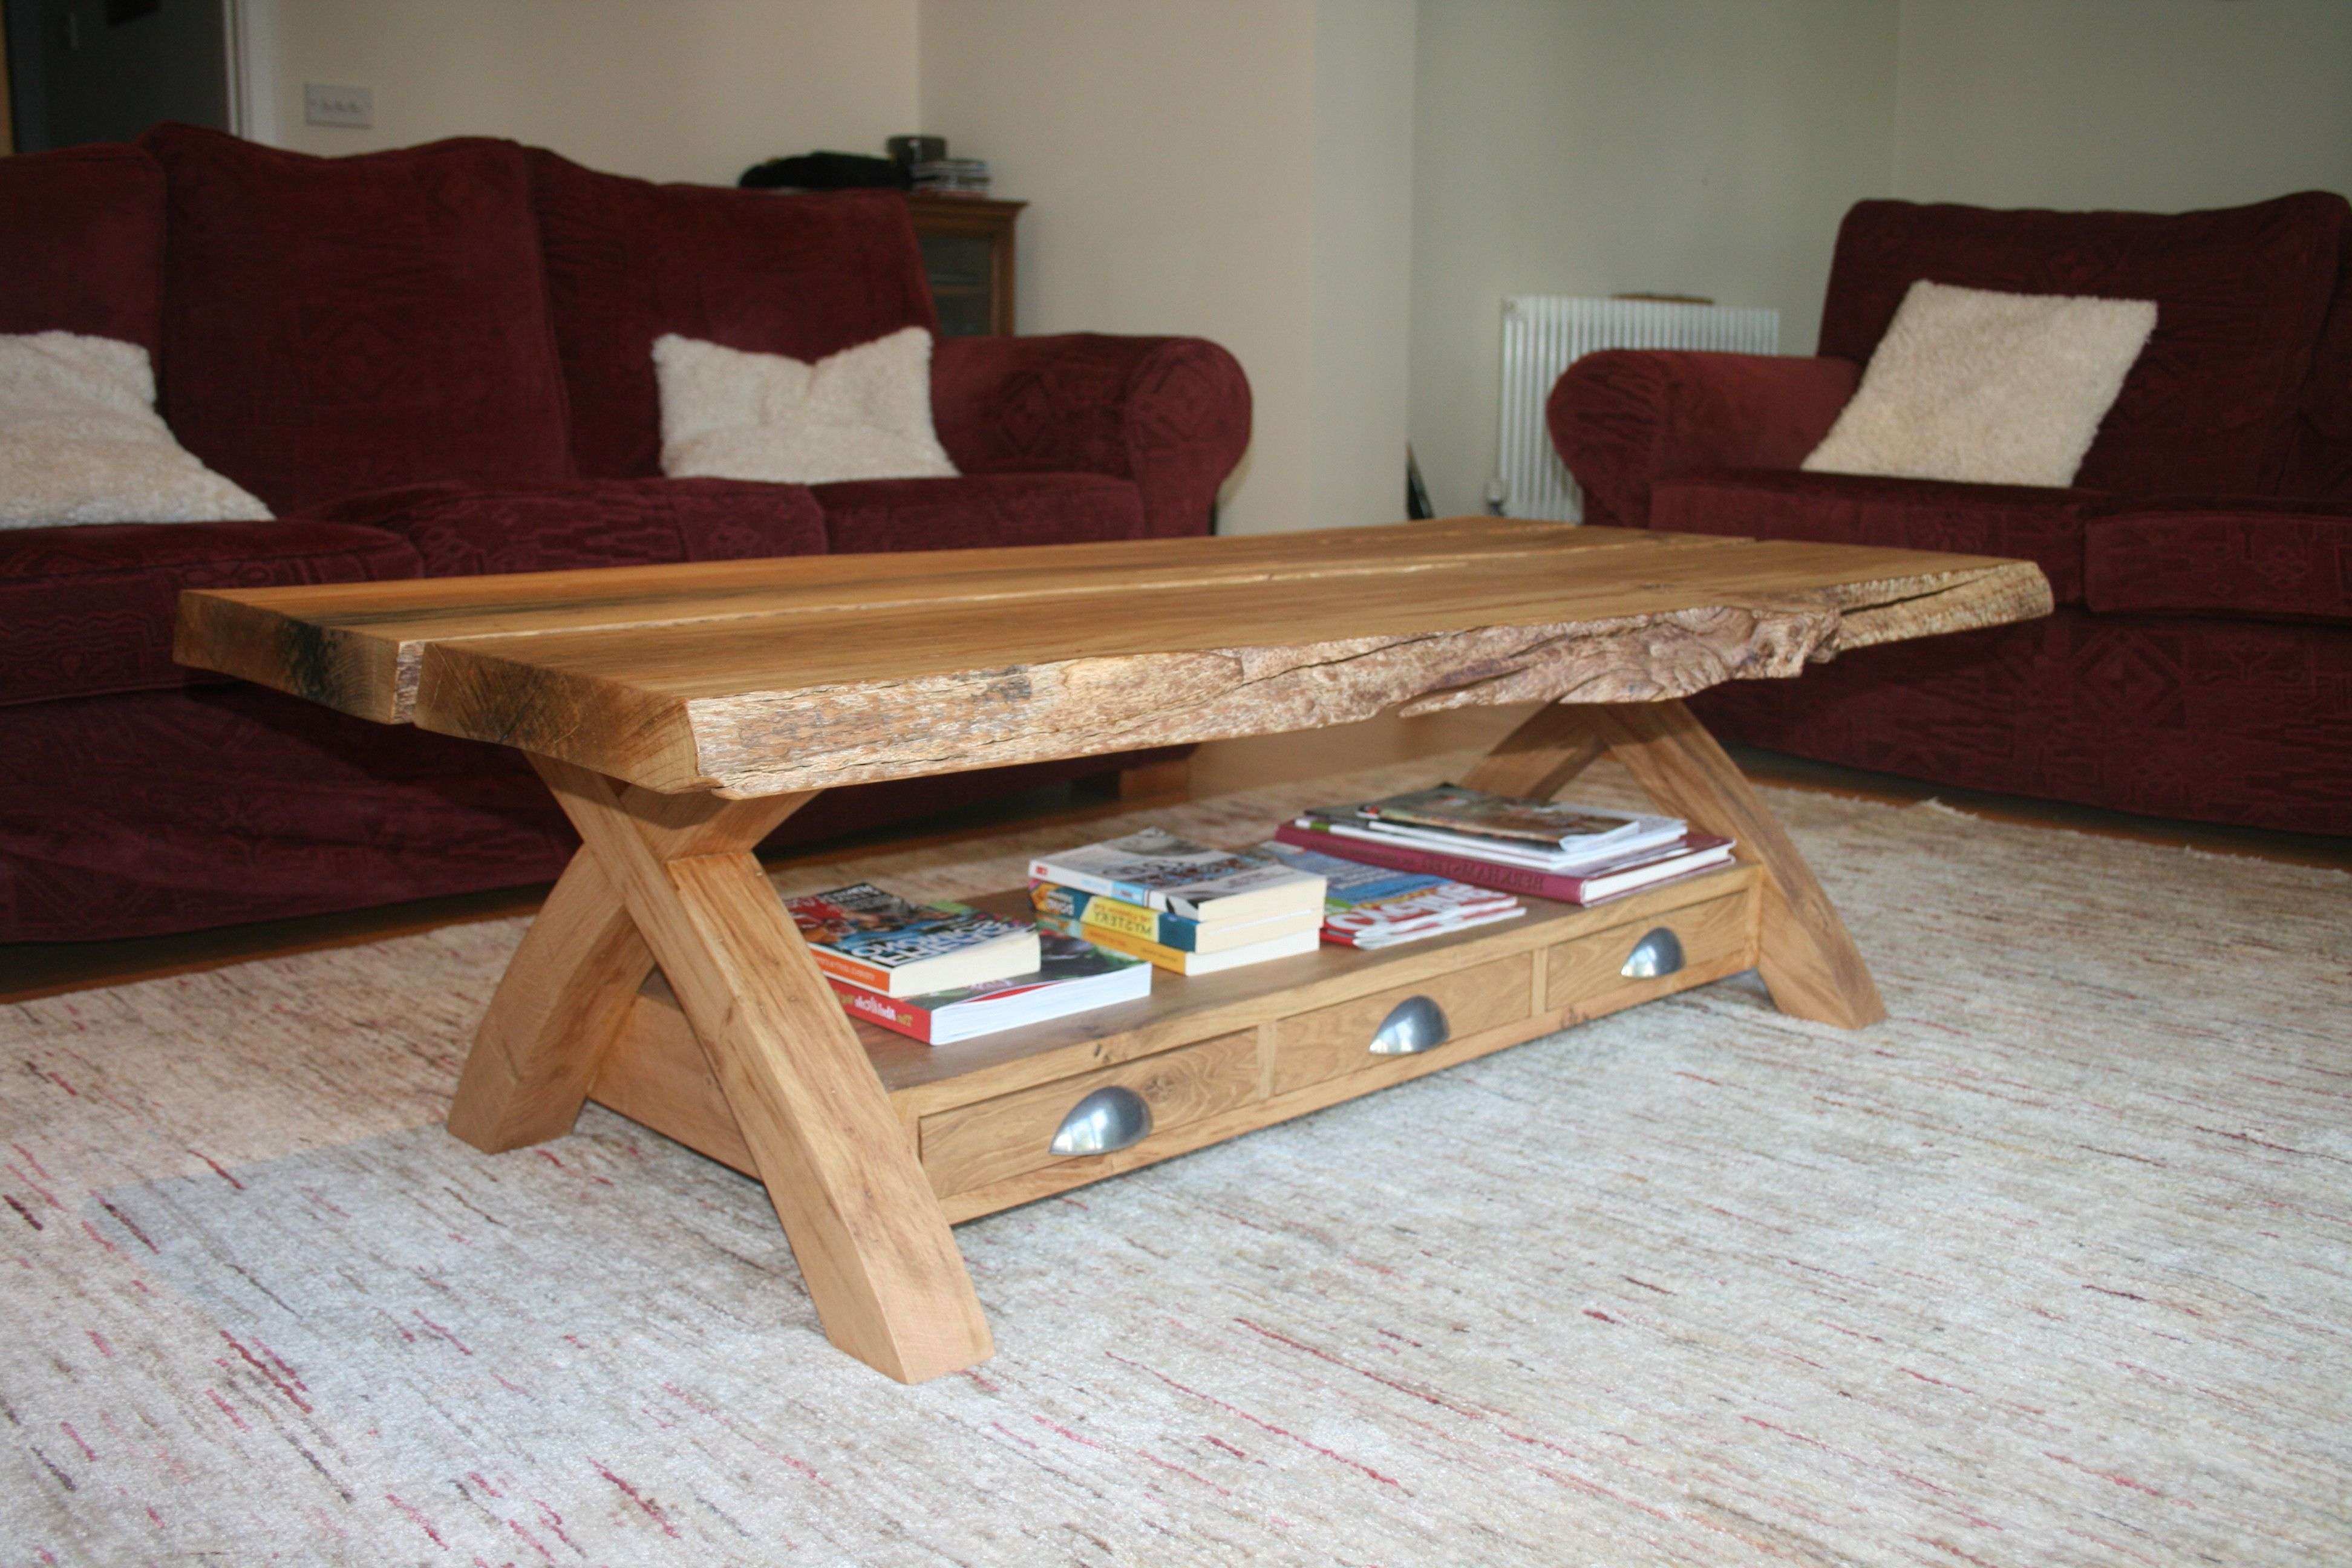 Most Recently Released Unusual Wooden Coffee Tables Inside Coffee Tables : Unusual Coffee Table Design End Furniture Tables (View 14 of 20)